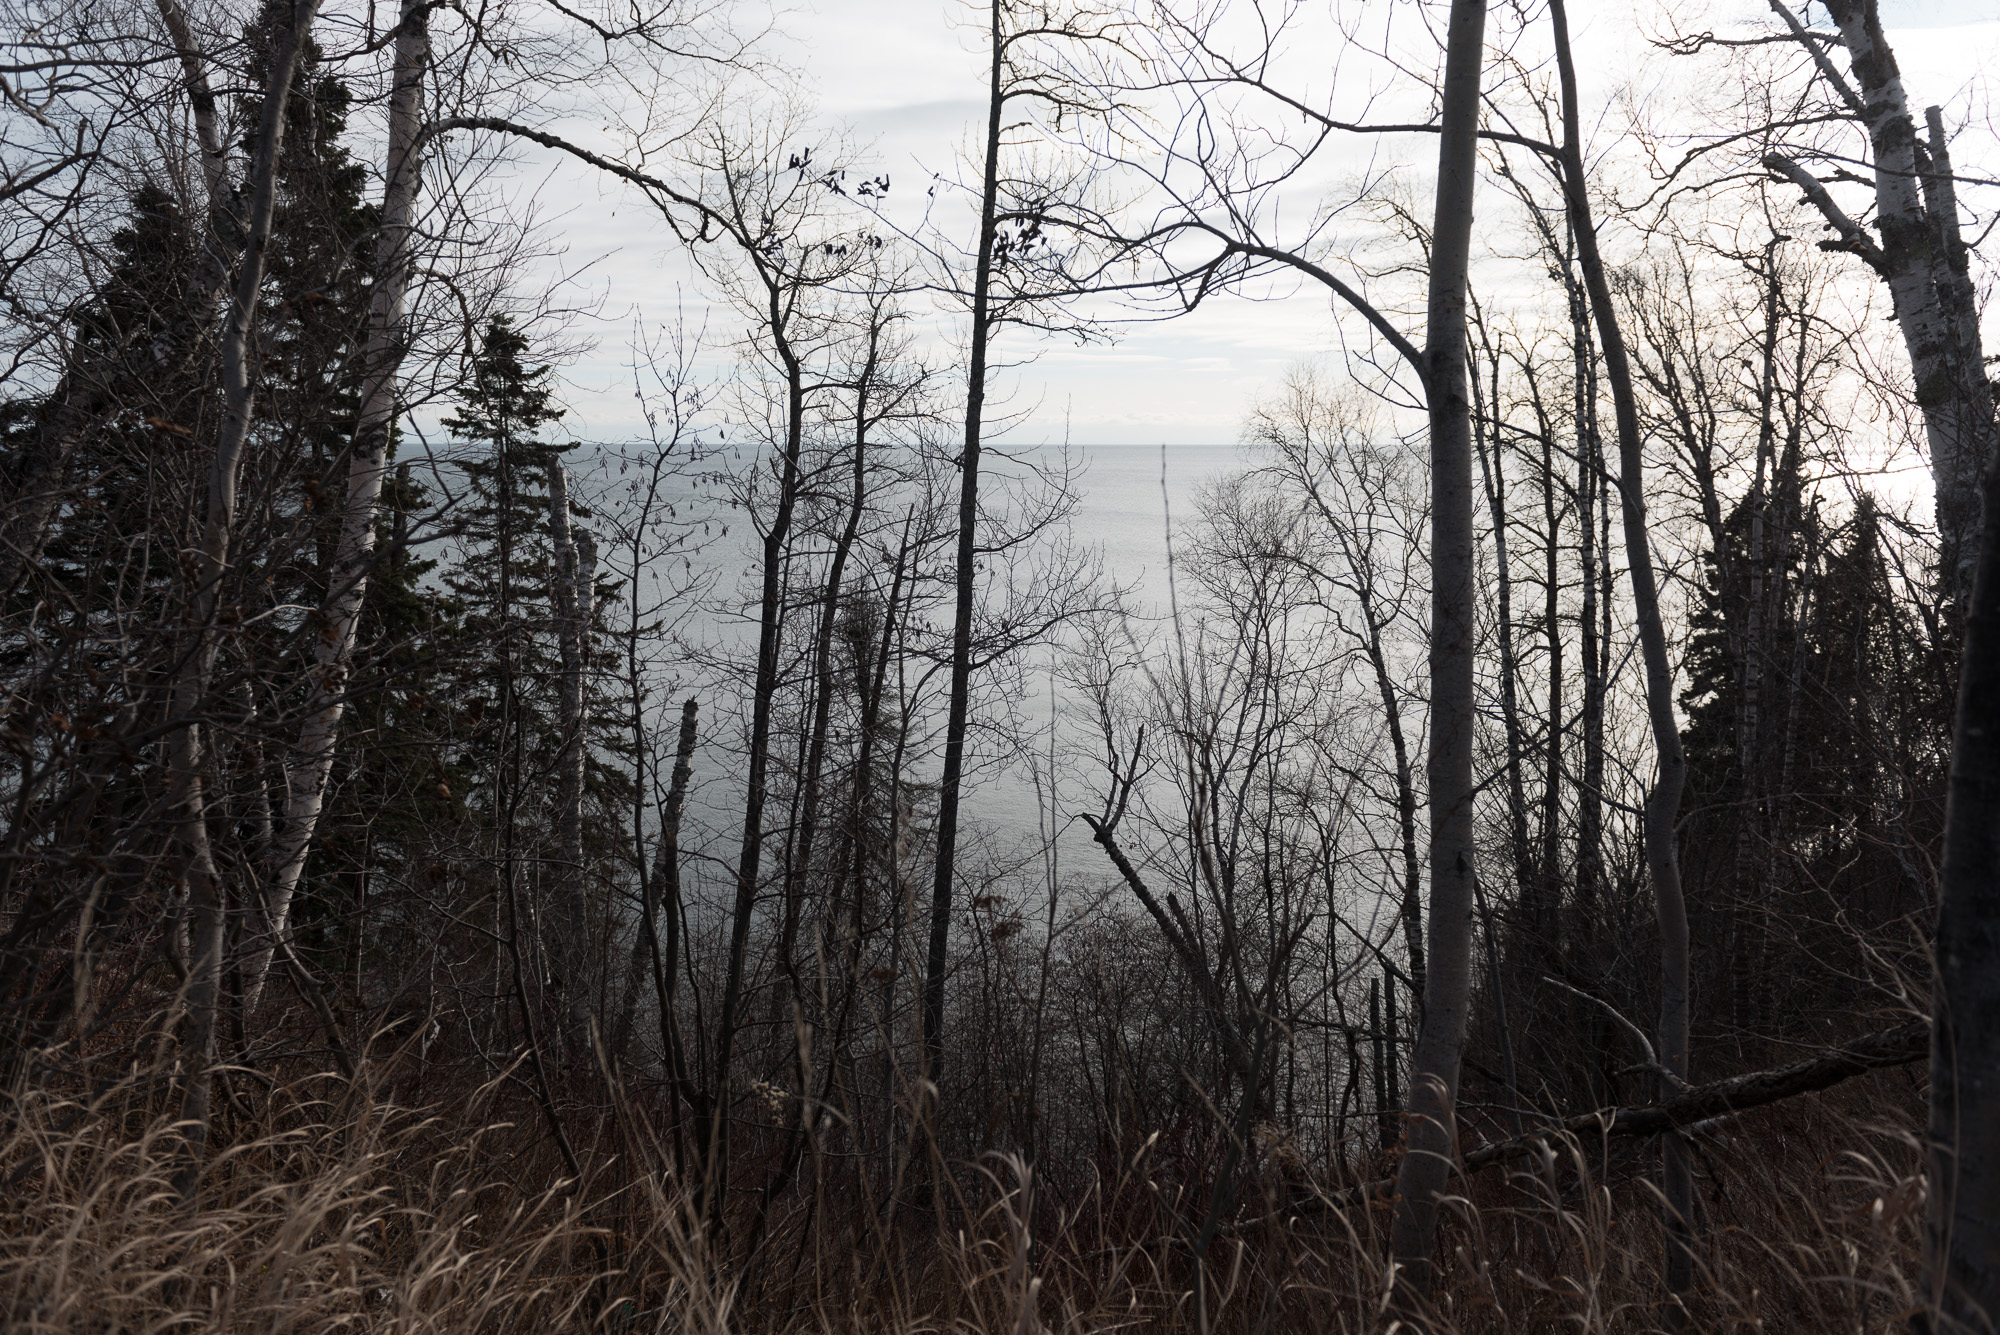 Looking through leaf-less trees and pines to Lake Superior